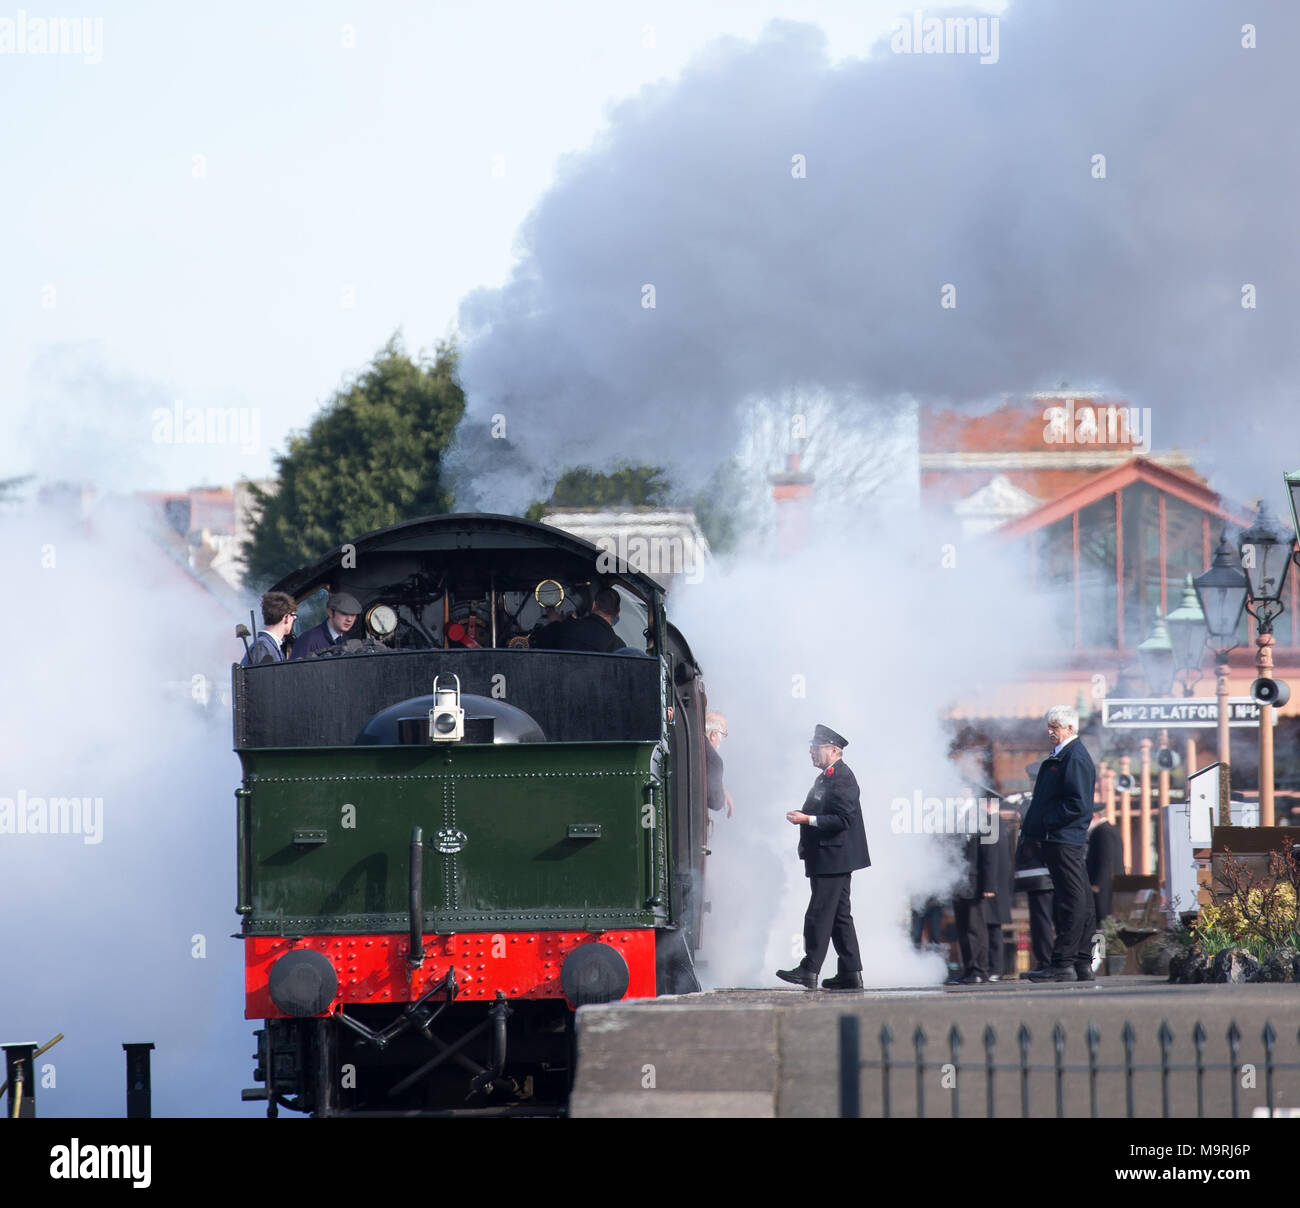 Landscape shot of UK steam locomotive in plumes of steam & smoke as crew prepare for a.m. departure from Severn Valley Railway's Kidderminster station. - Stock Image